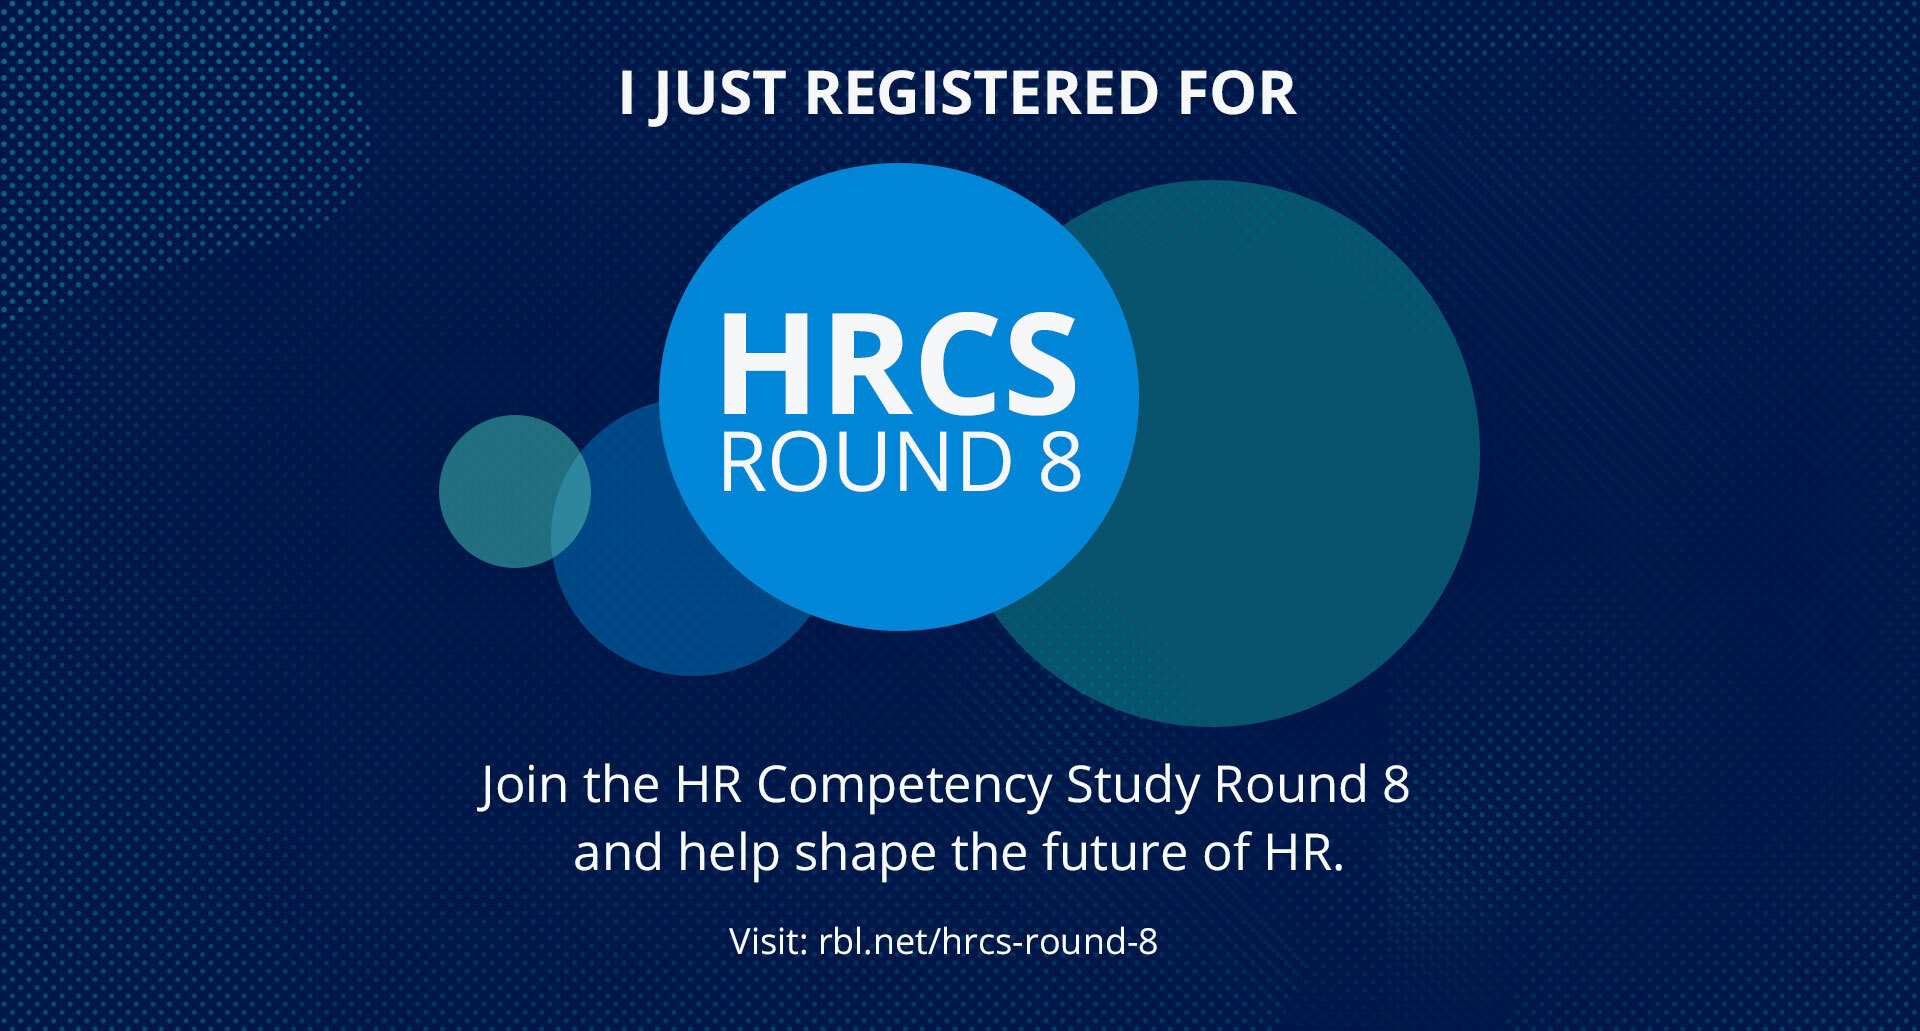 I just registered for HRCS Round 8!